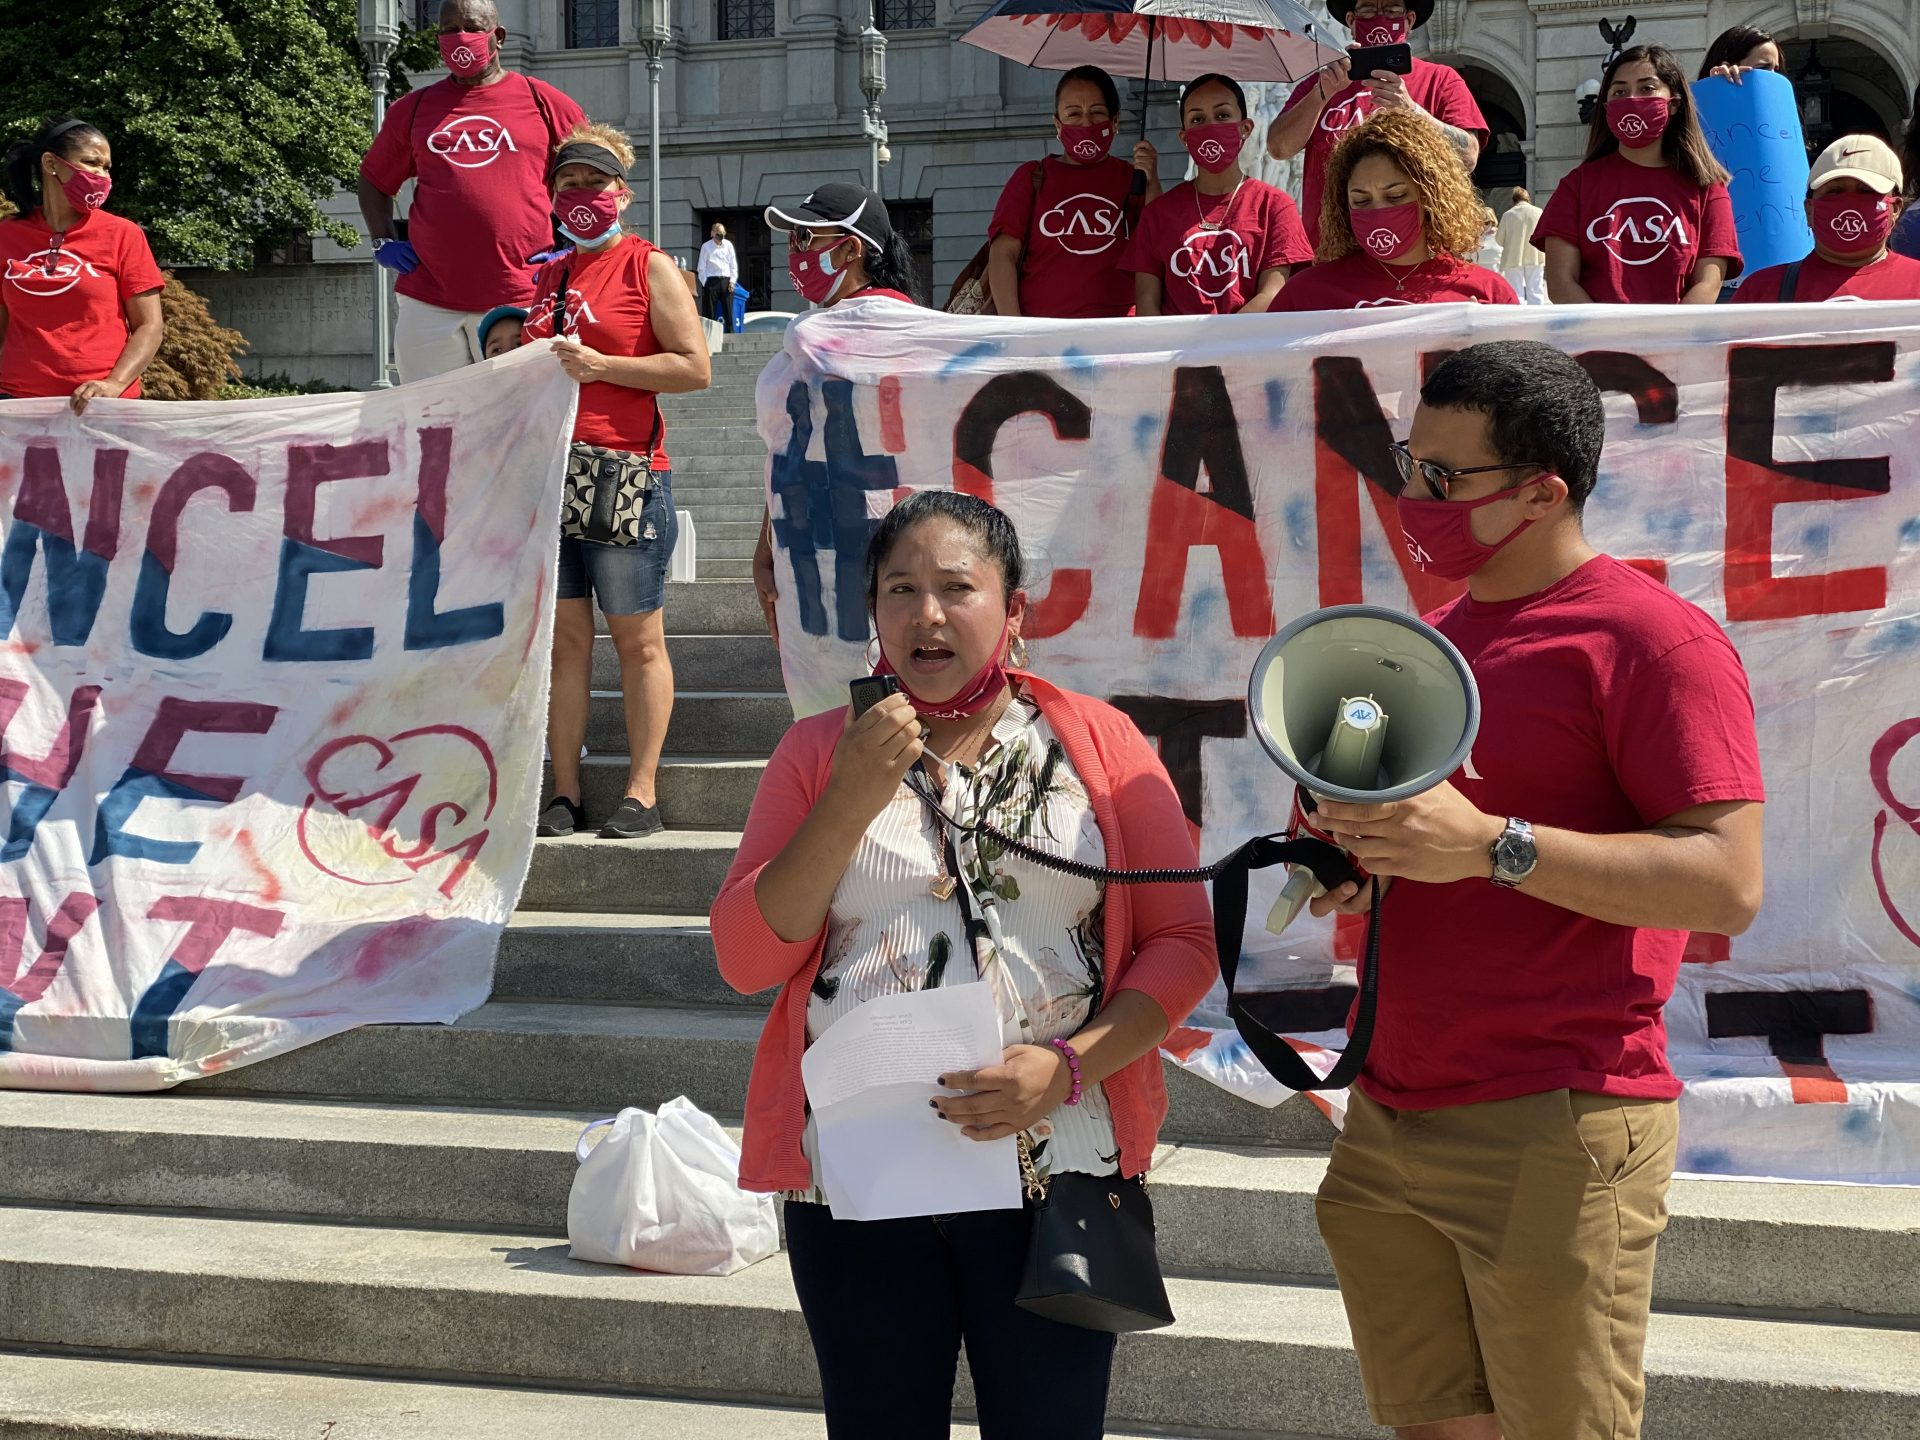 Elvia Gonzalez shared her story about losing work, contracting the coronavirus and struggling to pay rent during the pandemic Wednesday on the Capitol building steps. (Anthony Orozco/WITF)